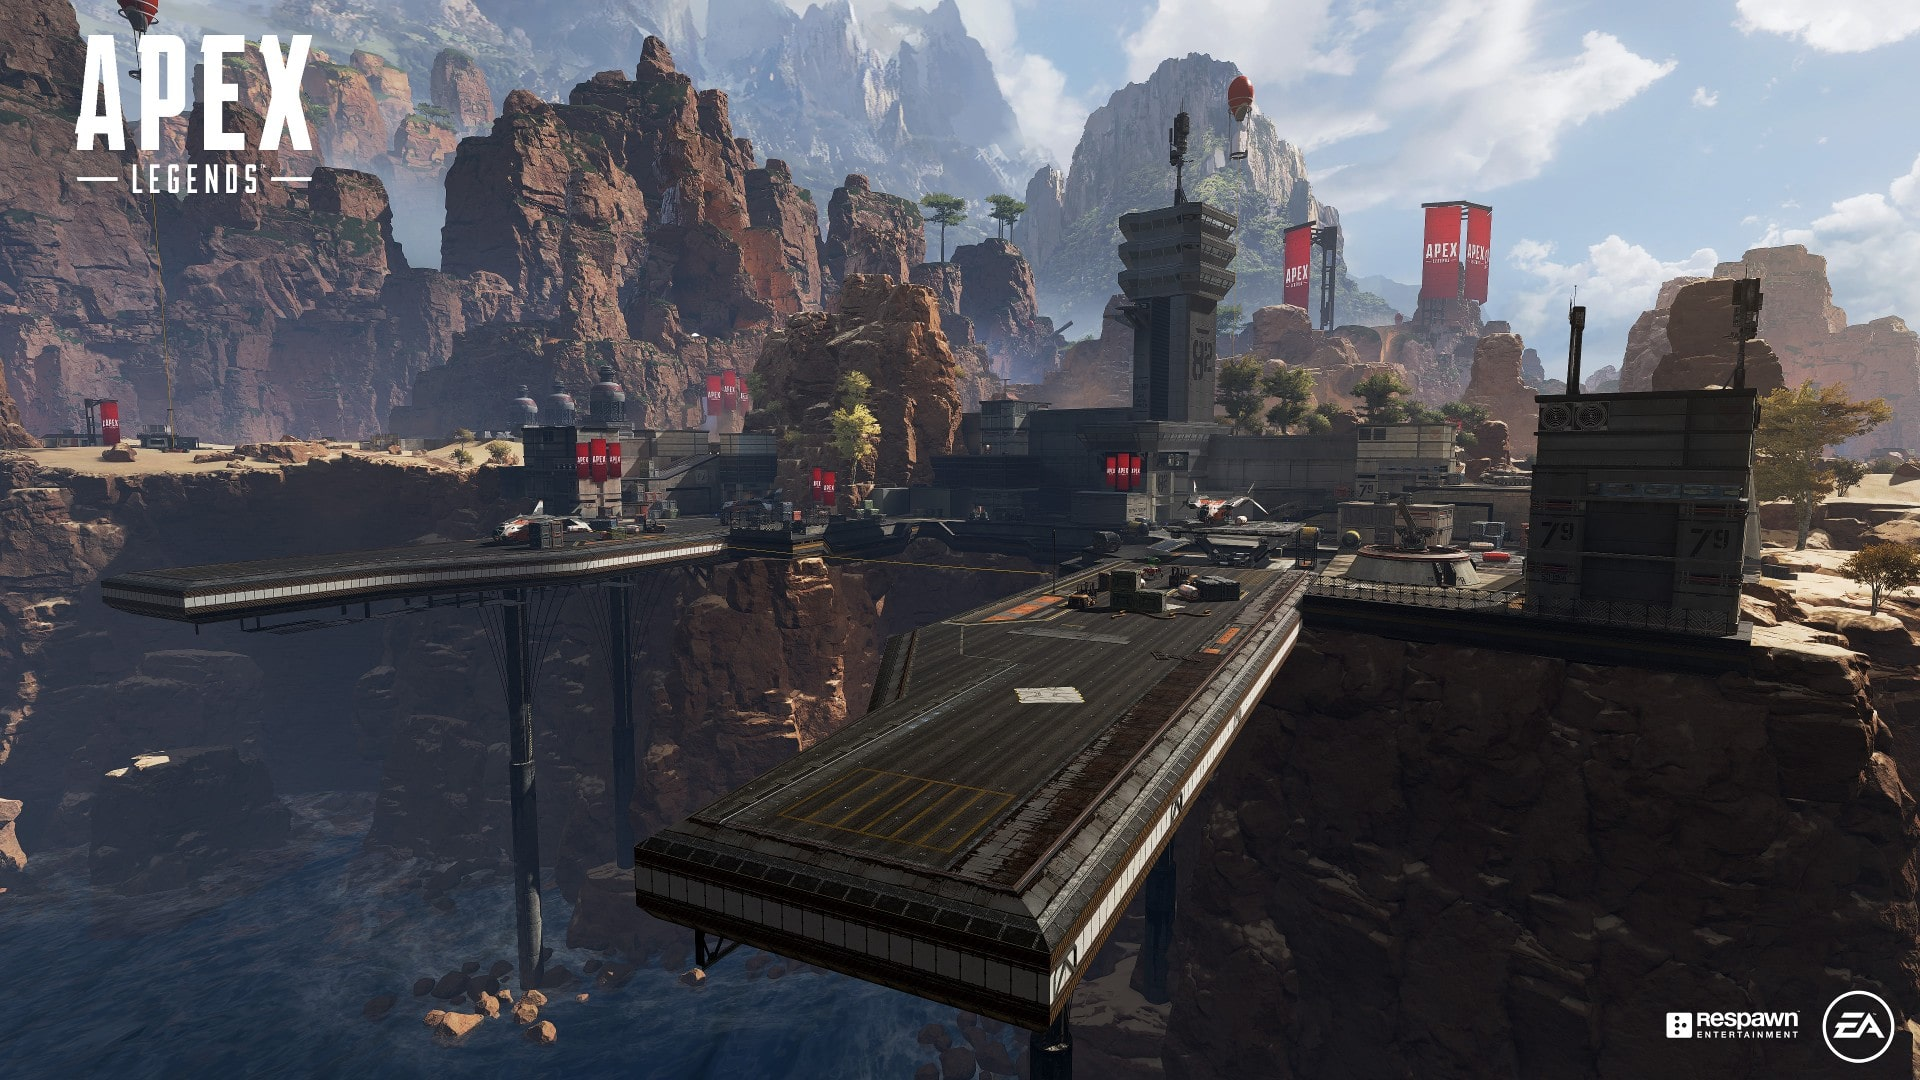 Apex Legends - Lifeline Edition (Origin key) -- RU